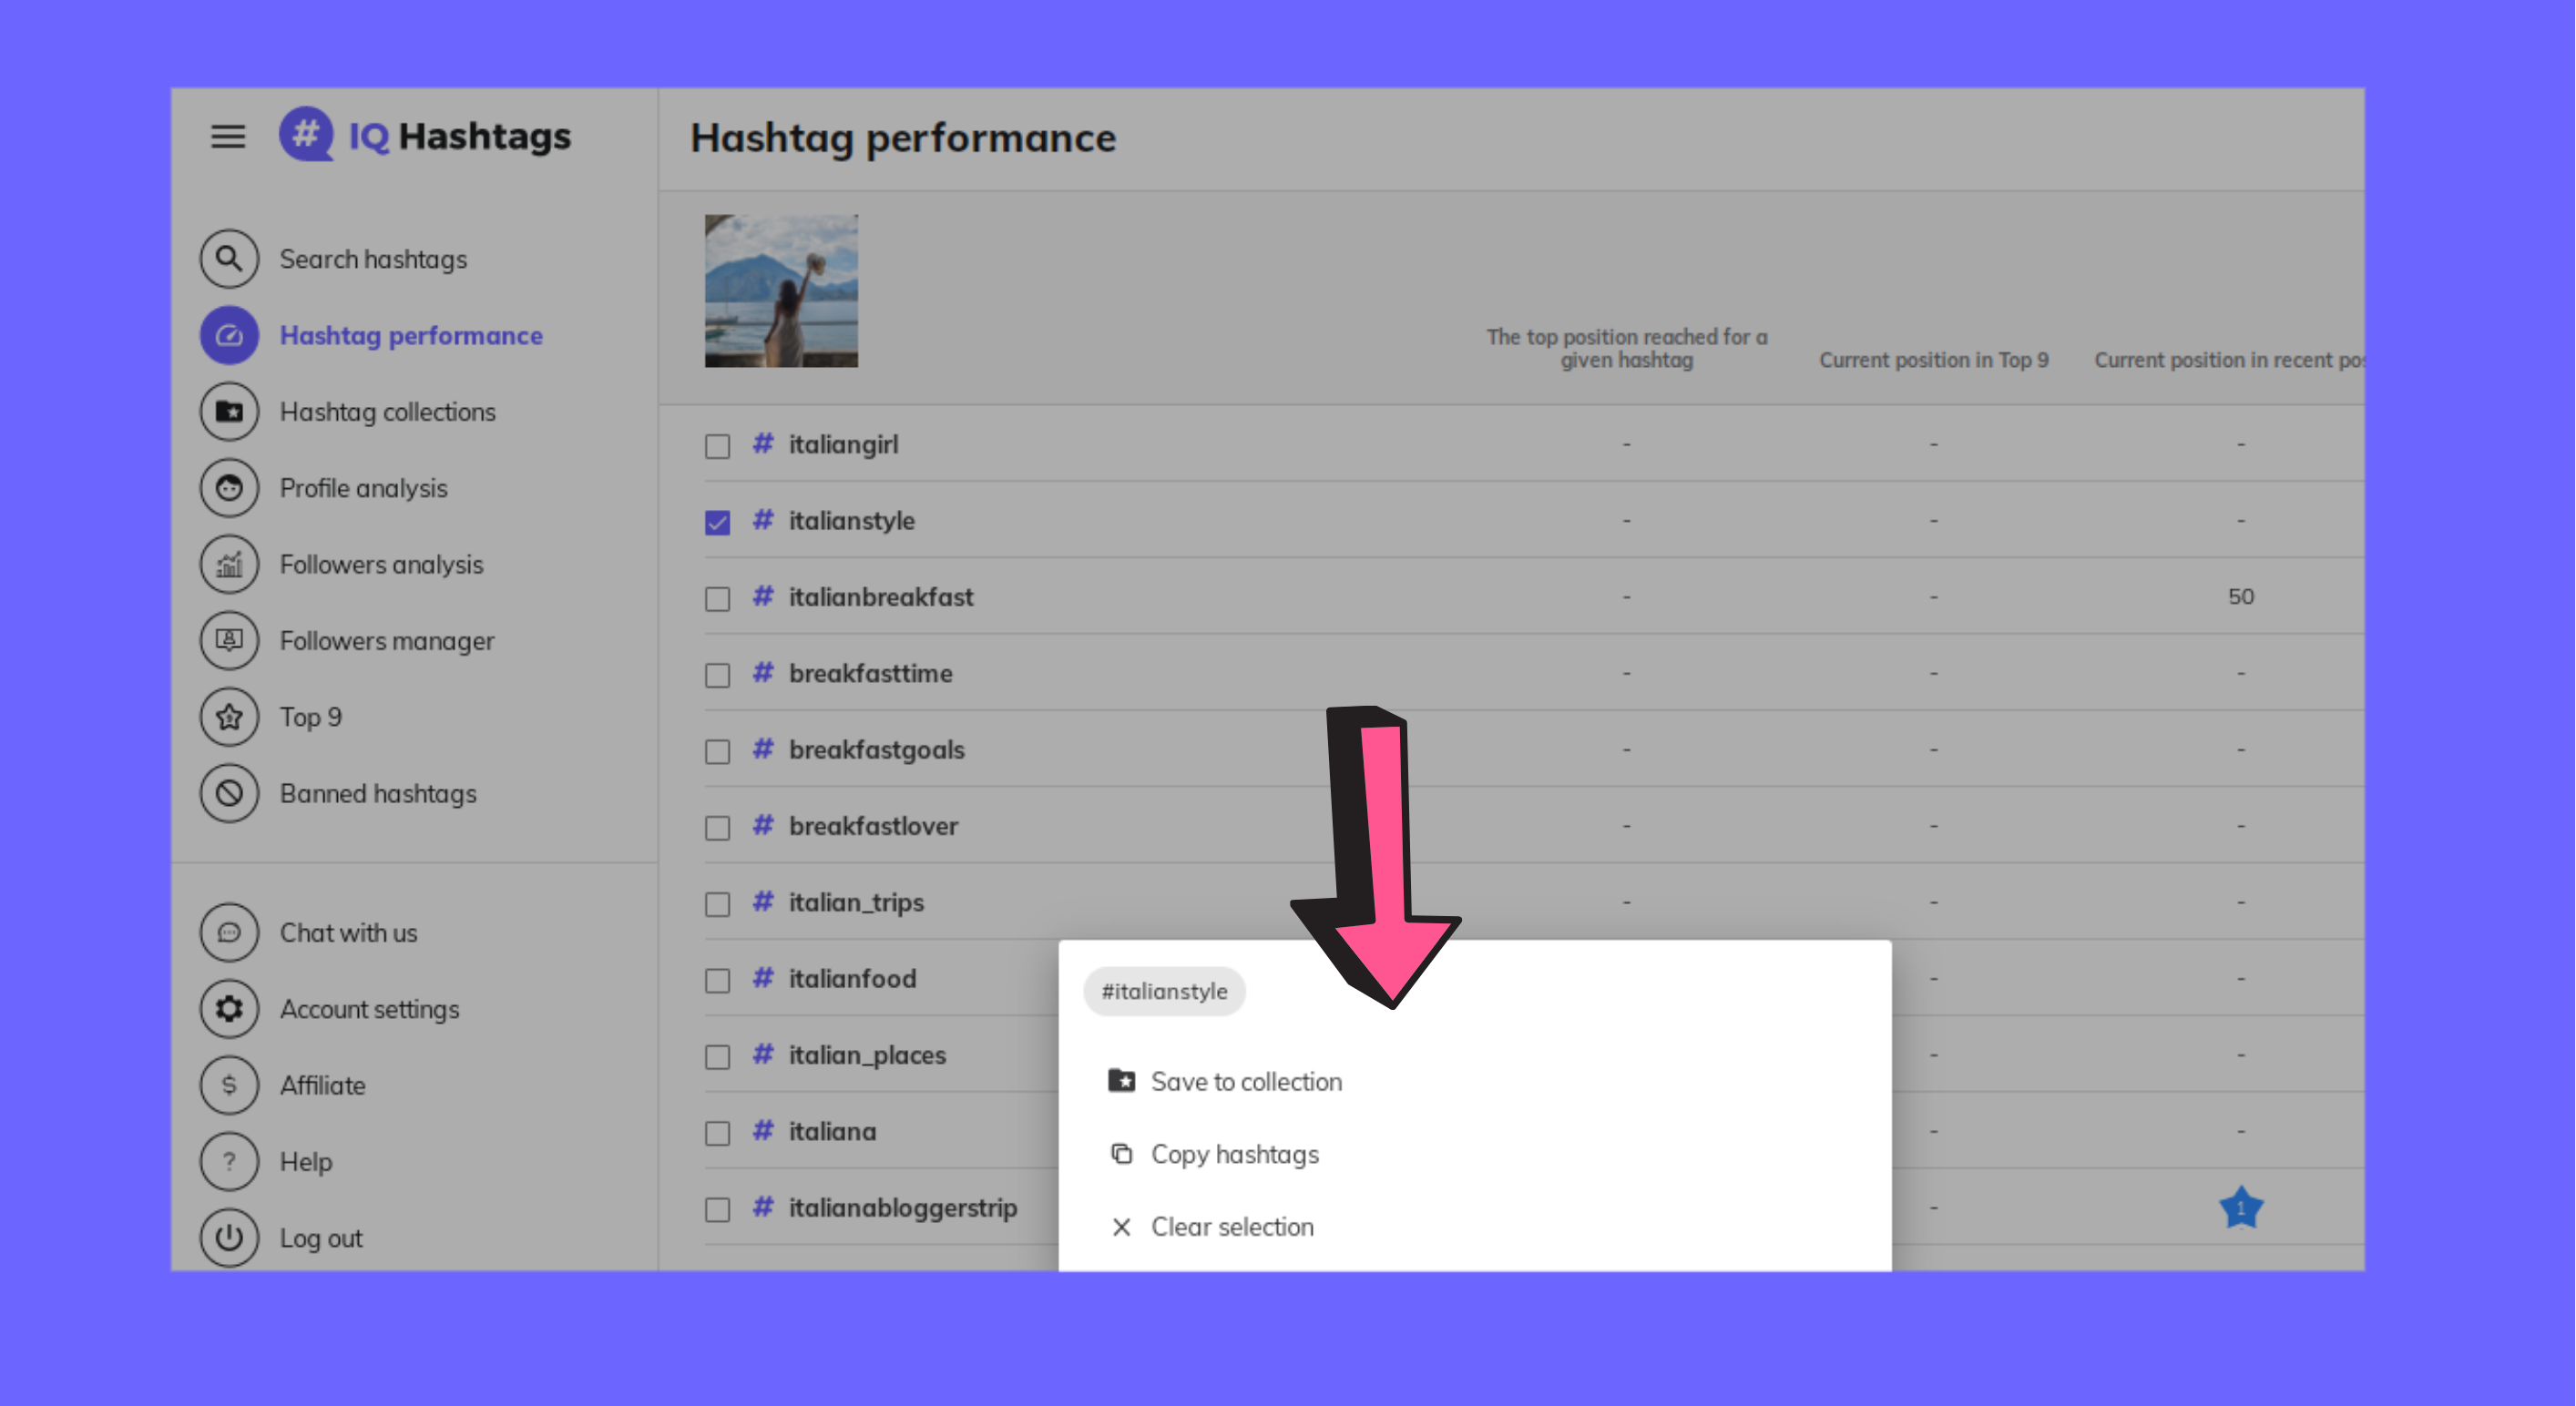 How to organize your hashtags into categories